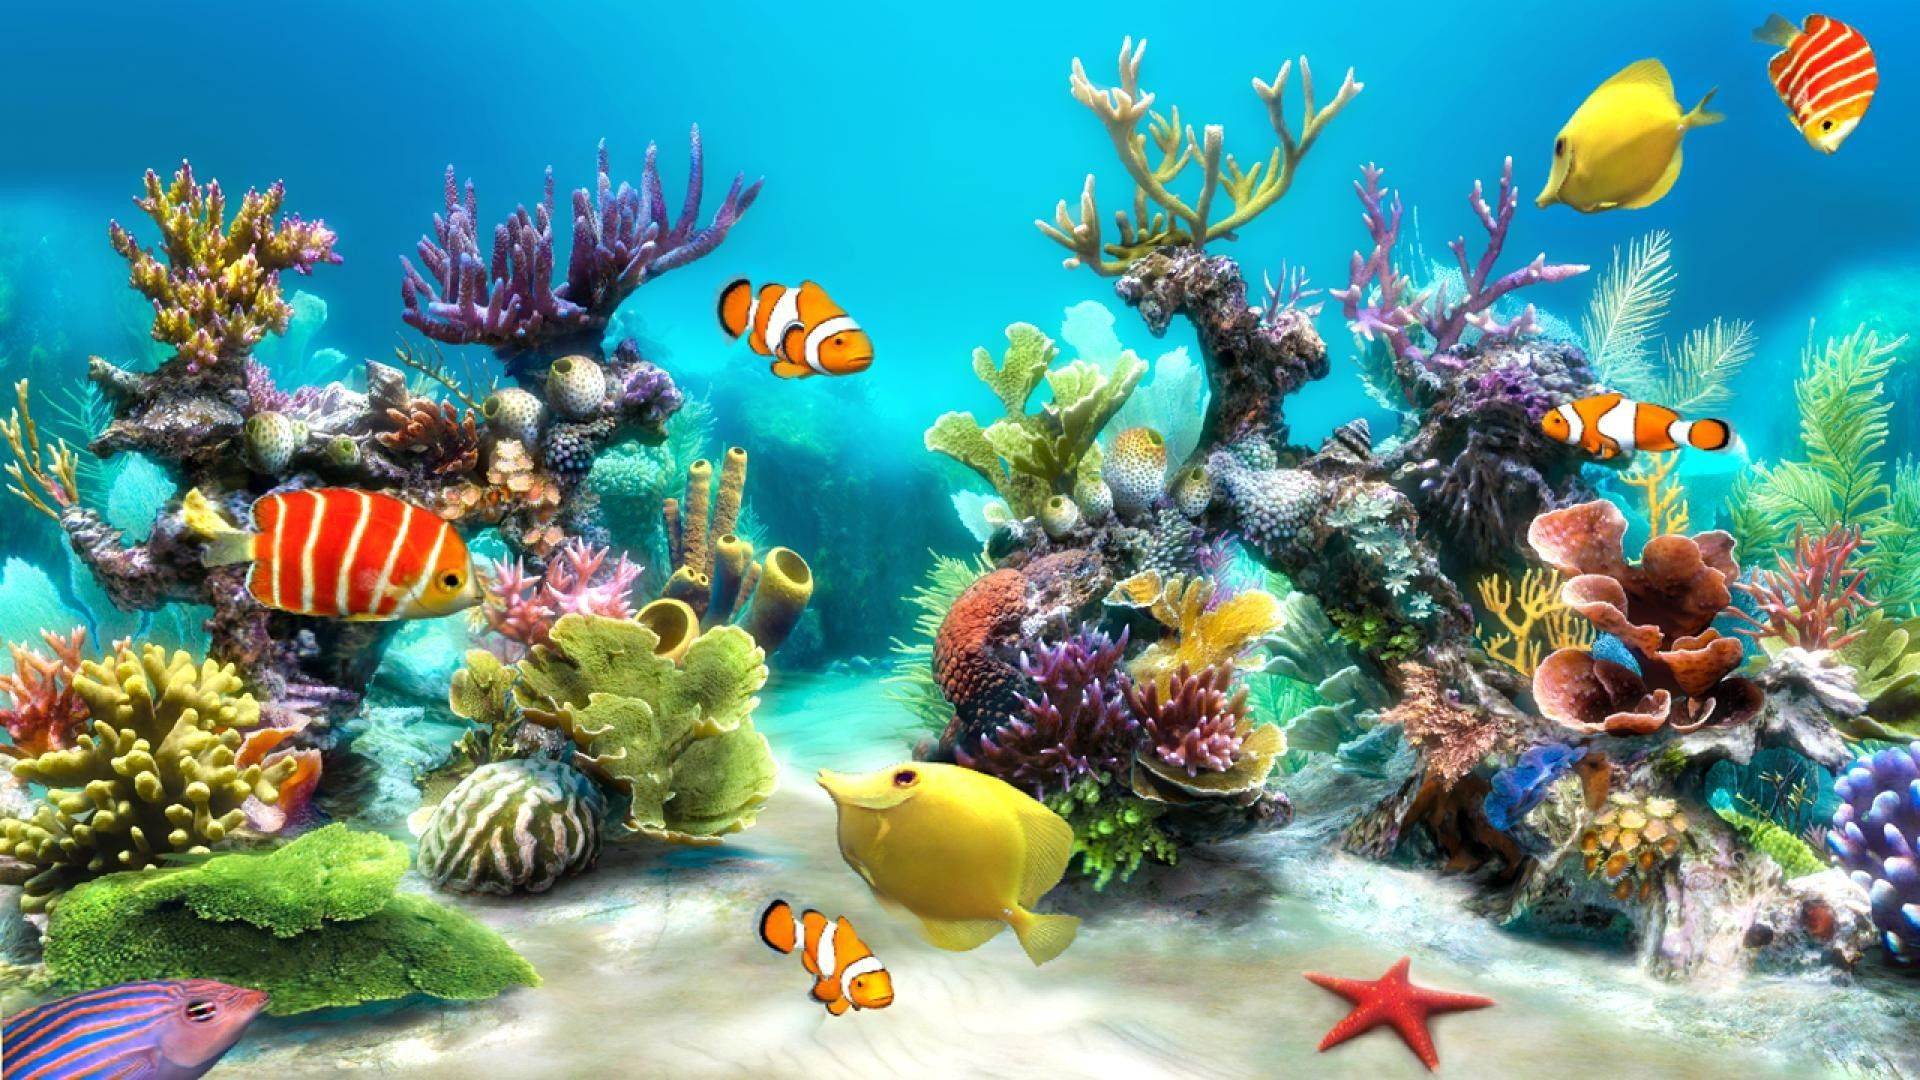 Fish Tank Wallpapers Top Free Fish Tank Backgrounds